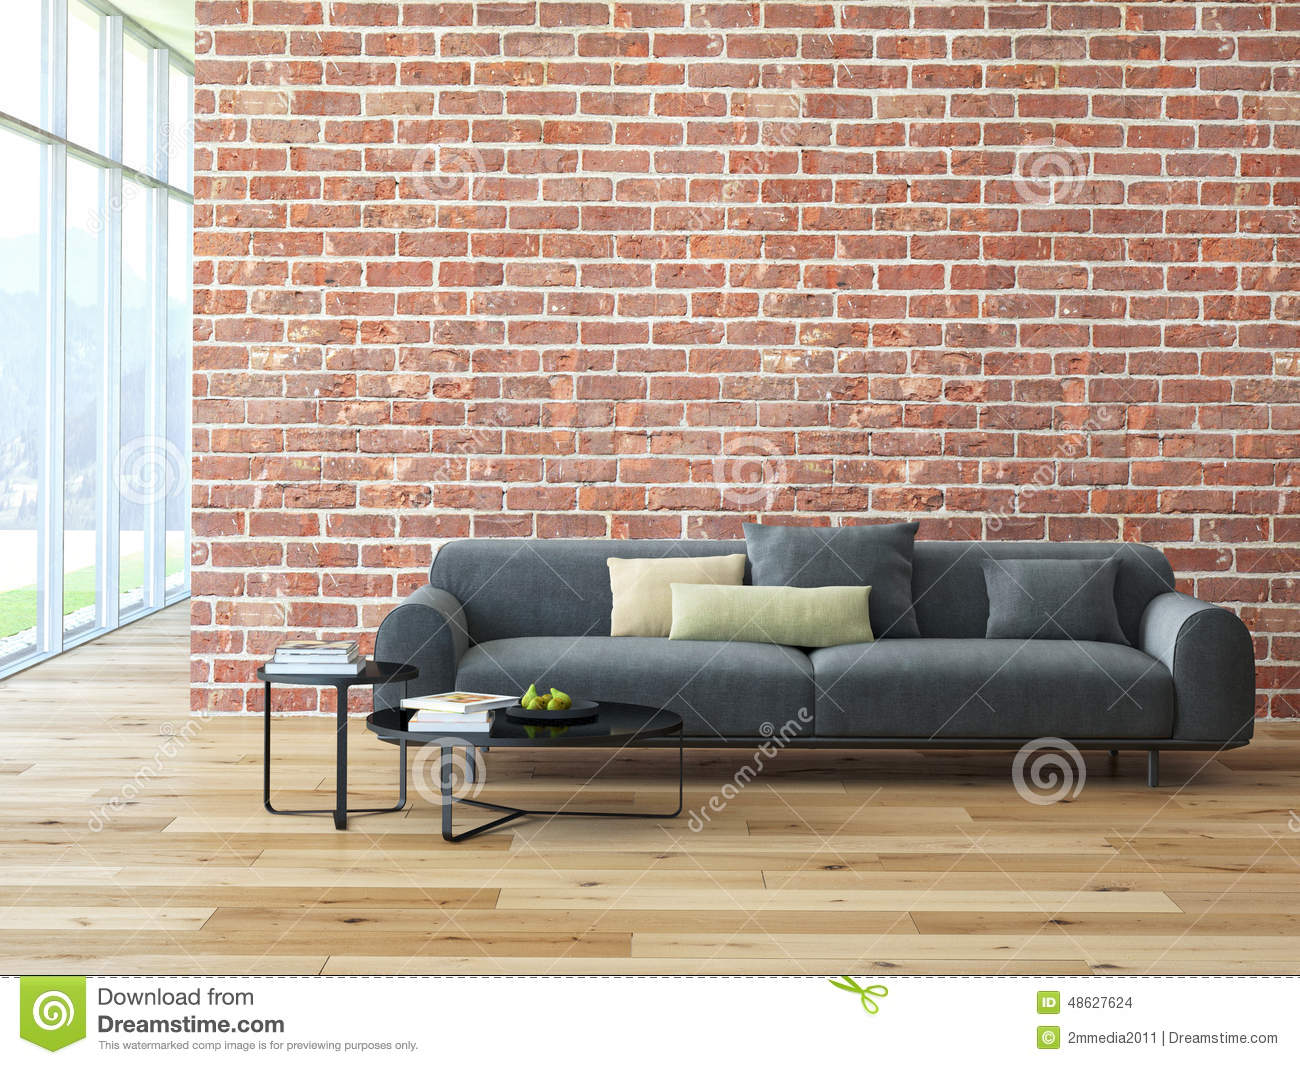 ... With Brick Wall And Coffee Table Stock Photo - Image: 48627624